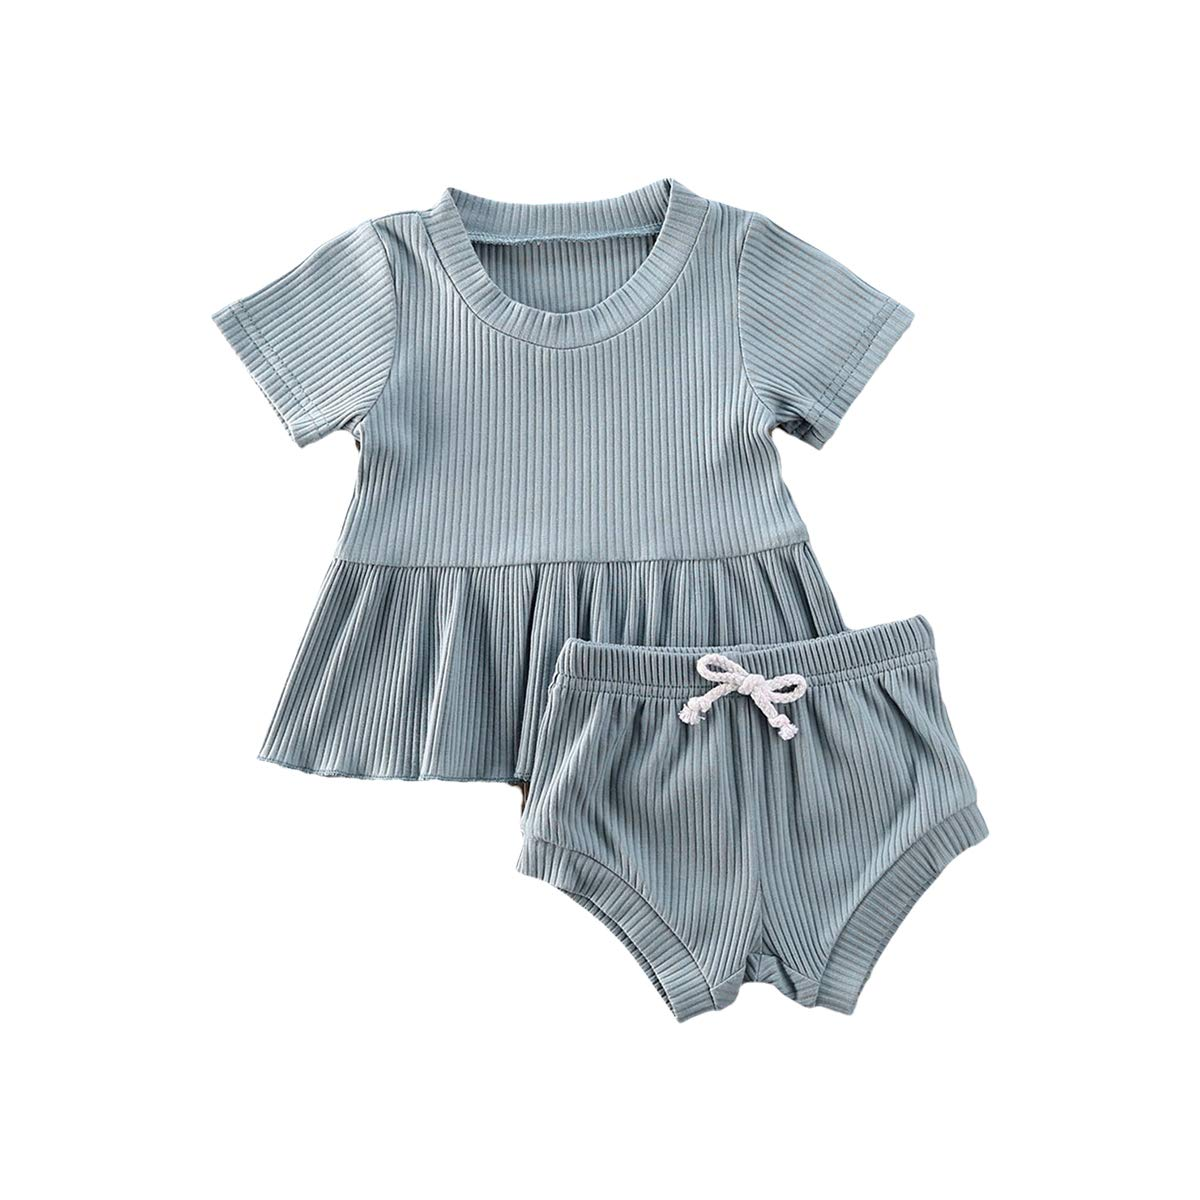 Baby Girls Summer Basic T-Shirt Tops + High Waisted Shorts Newborn Girls Cotton Knit 2Pcs Outfits Clothes